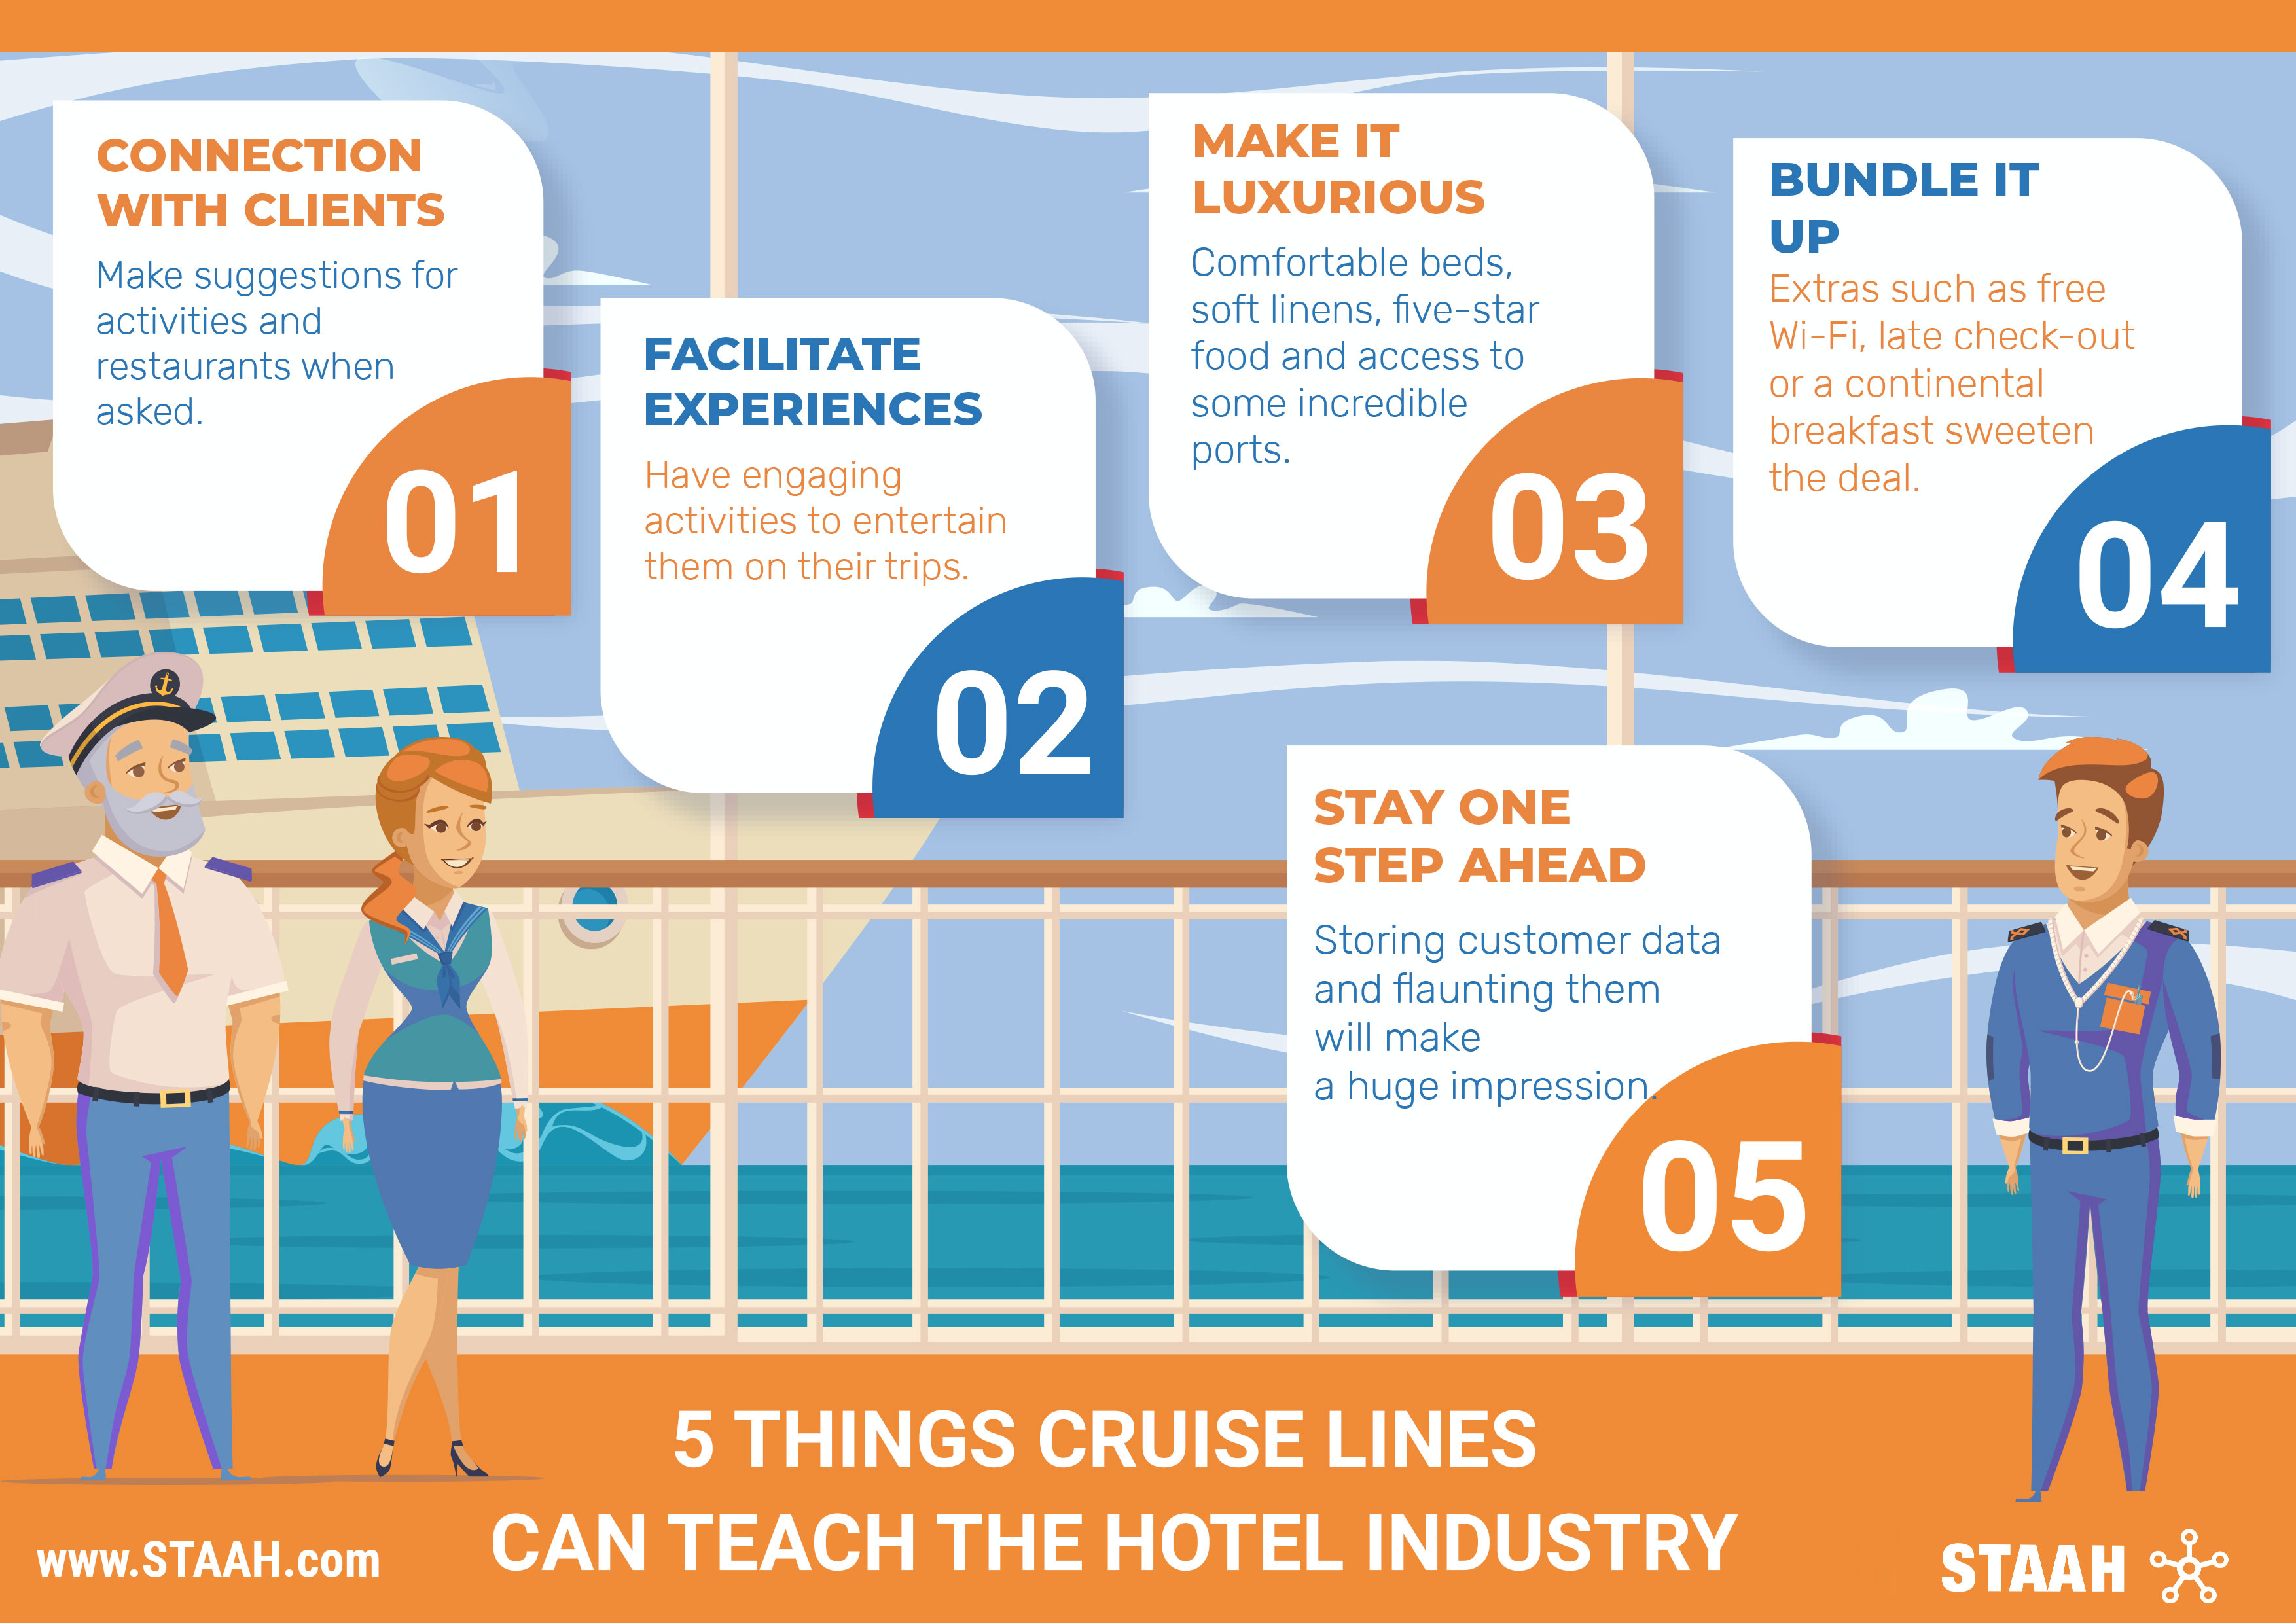 5 Things Cruise Lines Can Teach the Hotel Industry